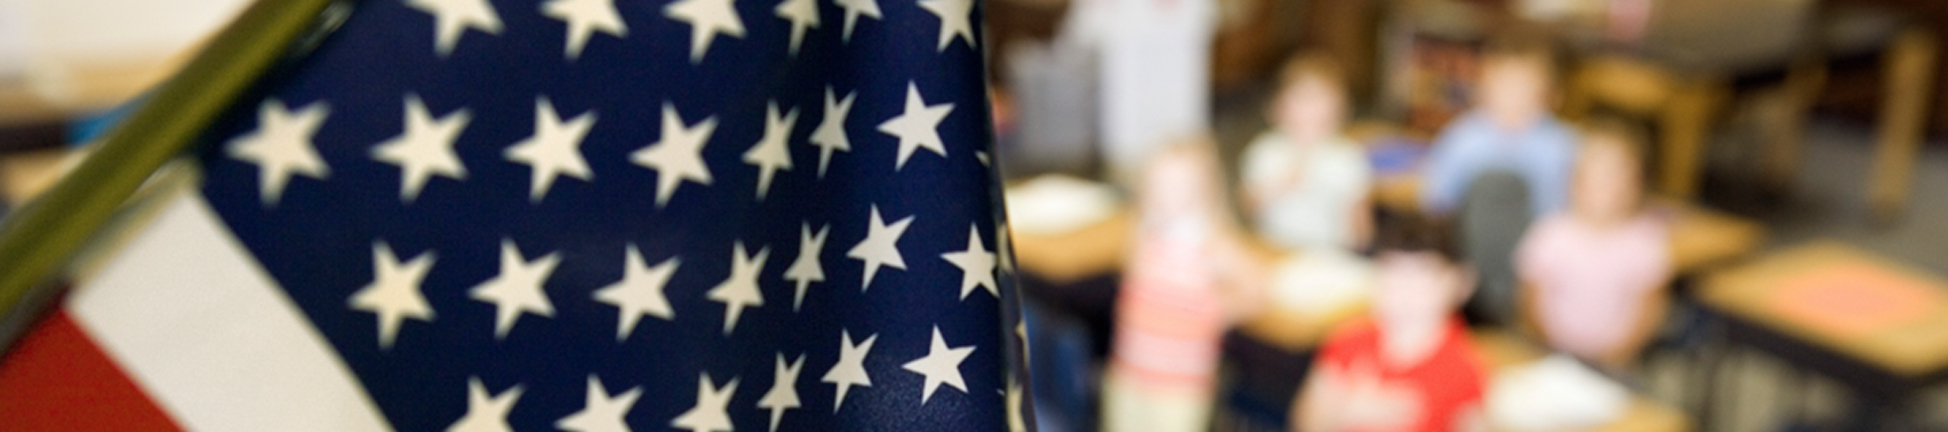 American flag hanging in a classroom with students in the background